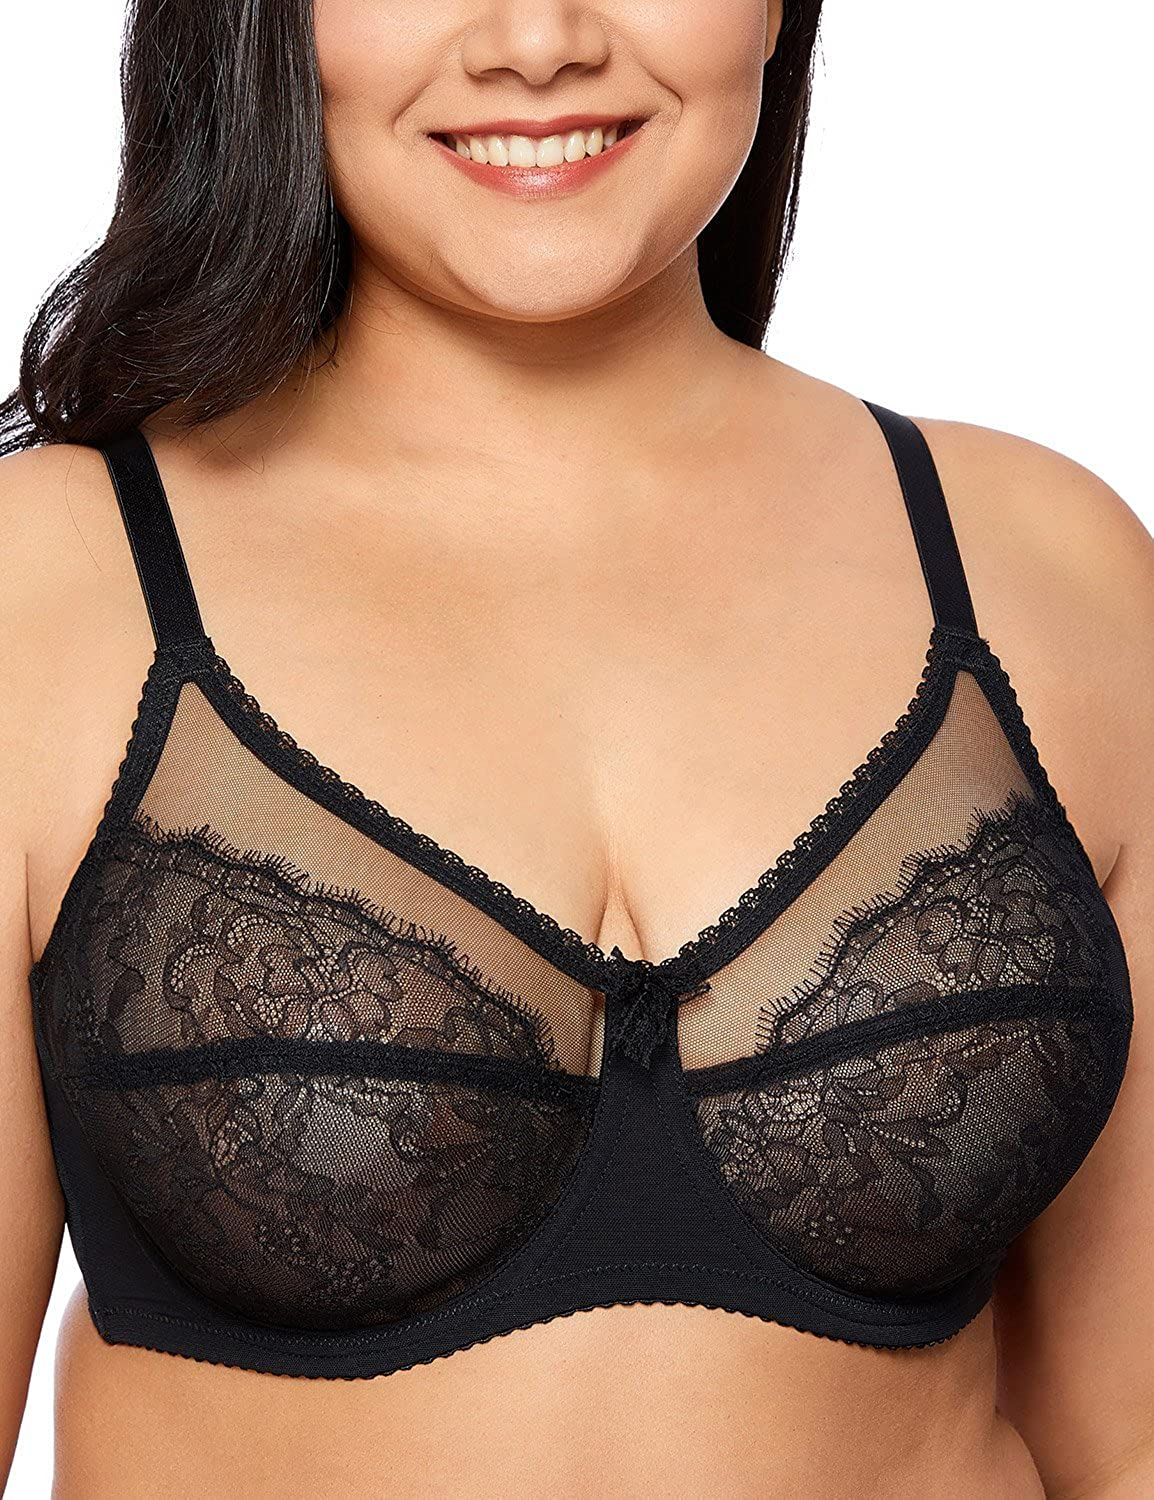 e8482e0d41f Gobought Womens Lace Sheer Full Cup Plus Size Bra Mesh See Through Unlined  Bralette Underwire at Amazon Women s Clothing store